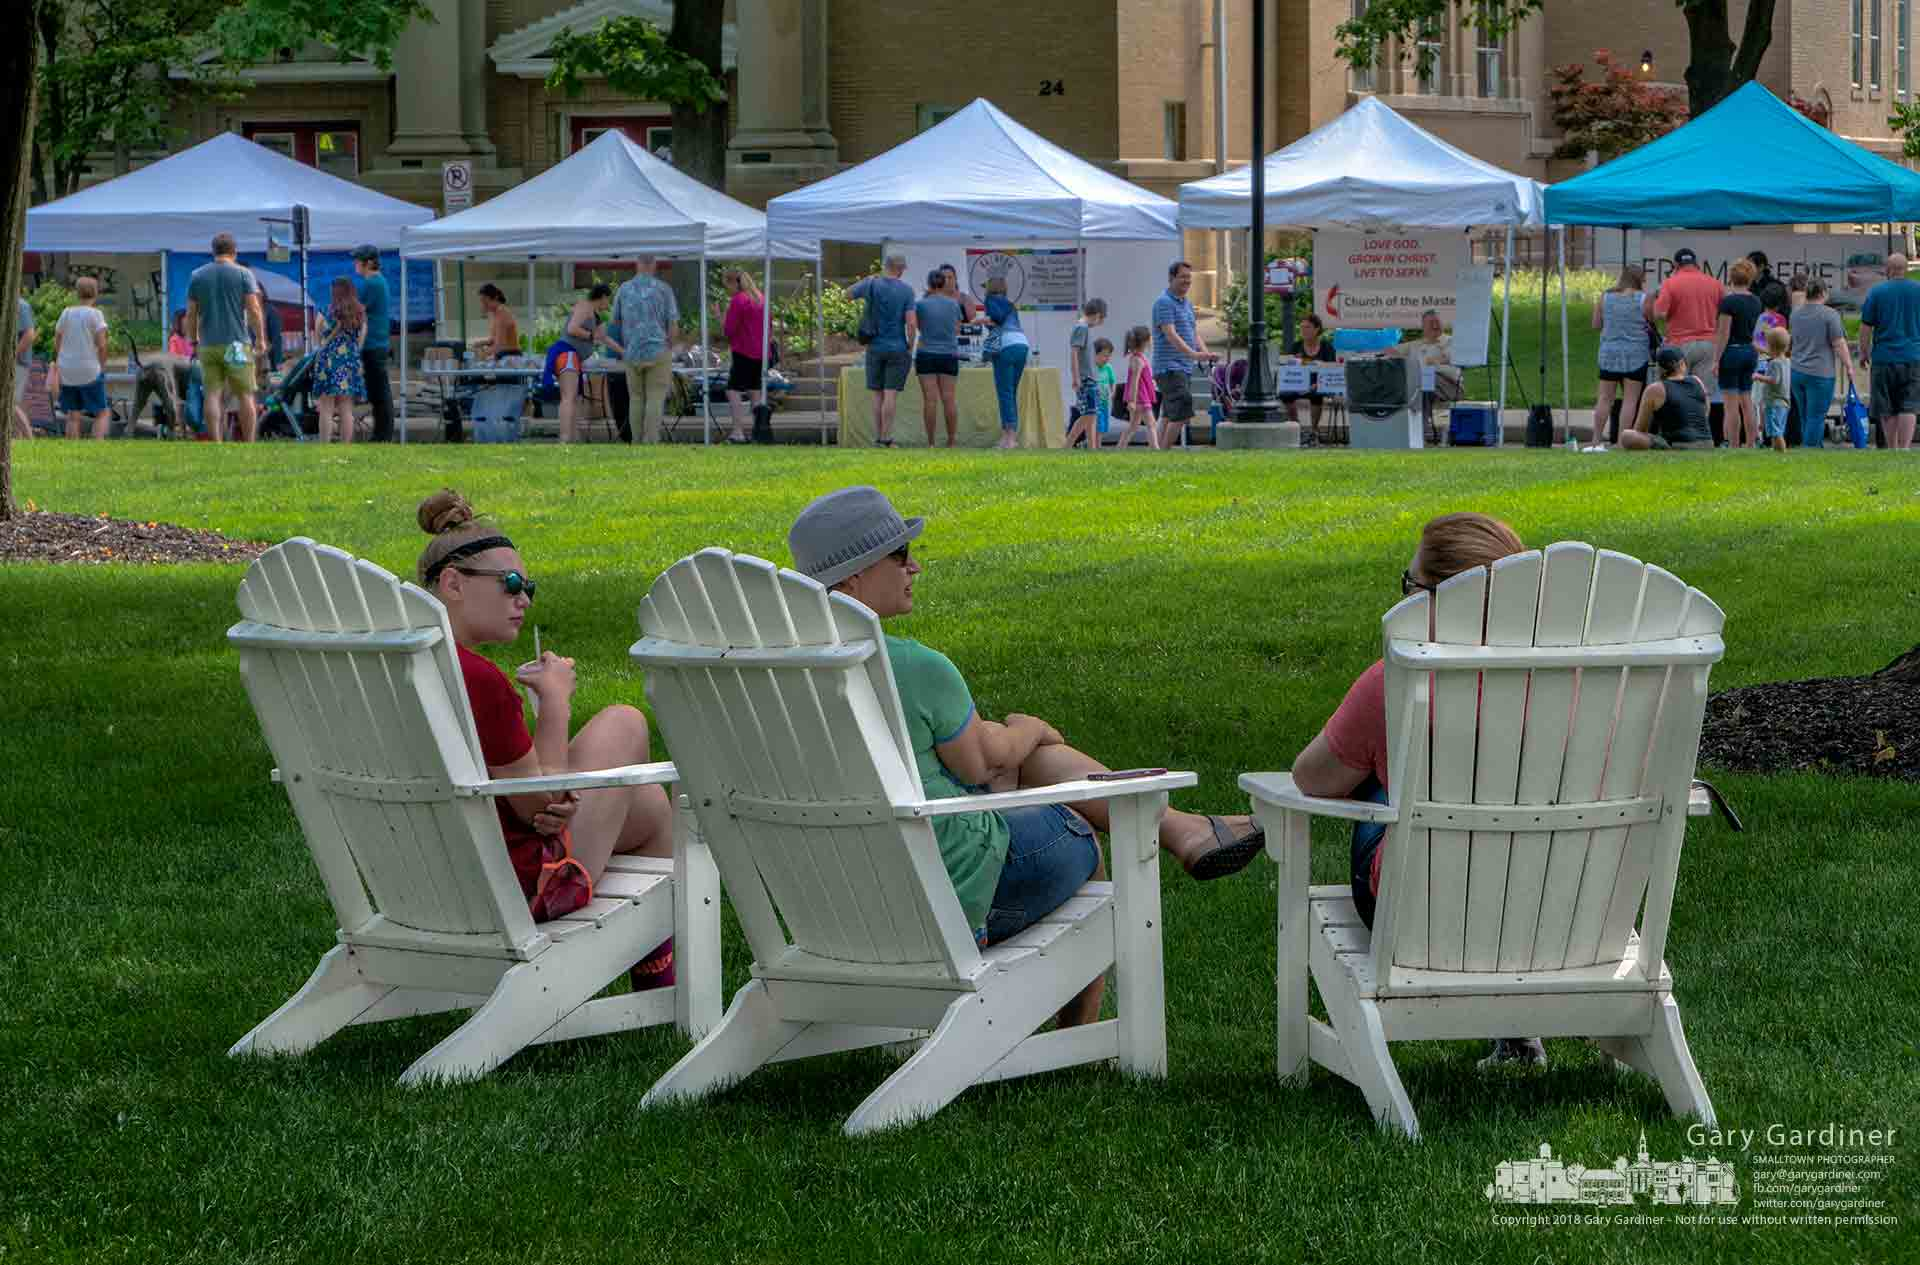 Shoppers at the Saturday Farmers Market settle into Adirondack chairs in front of Towers Hall after making selections from vendors at the market on Grove Street. My Final Photo for June 2, 2018.